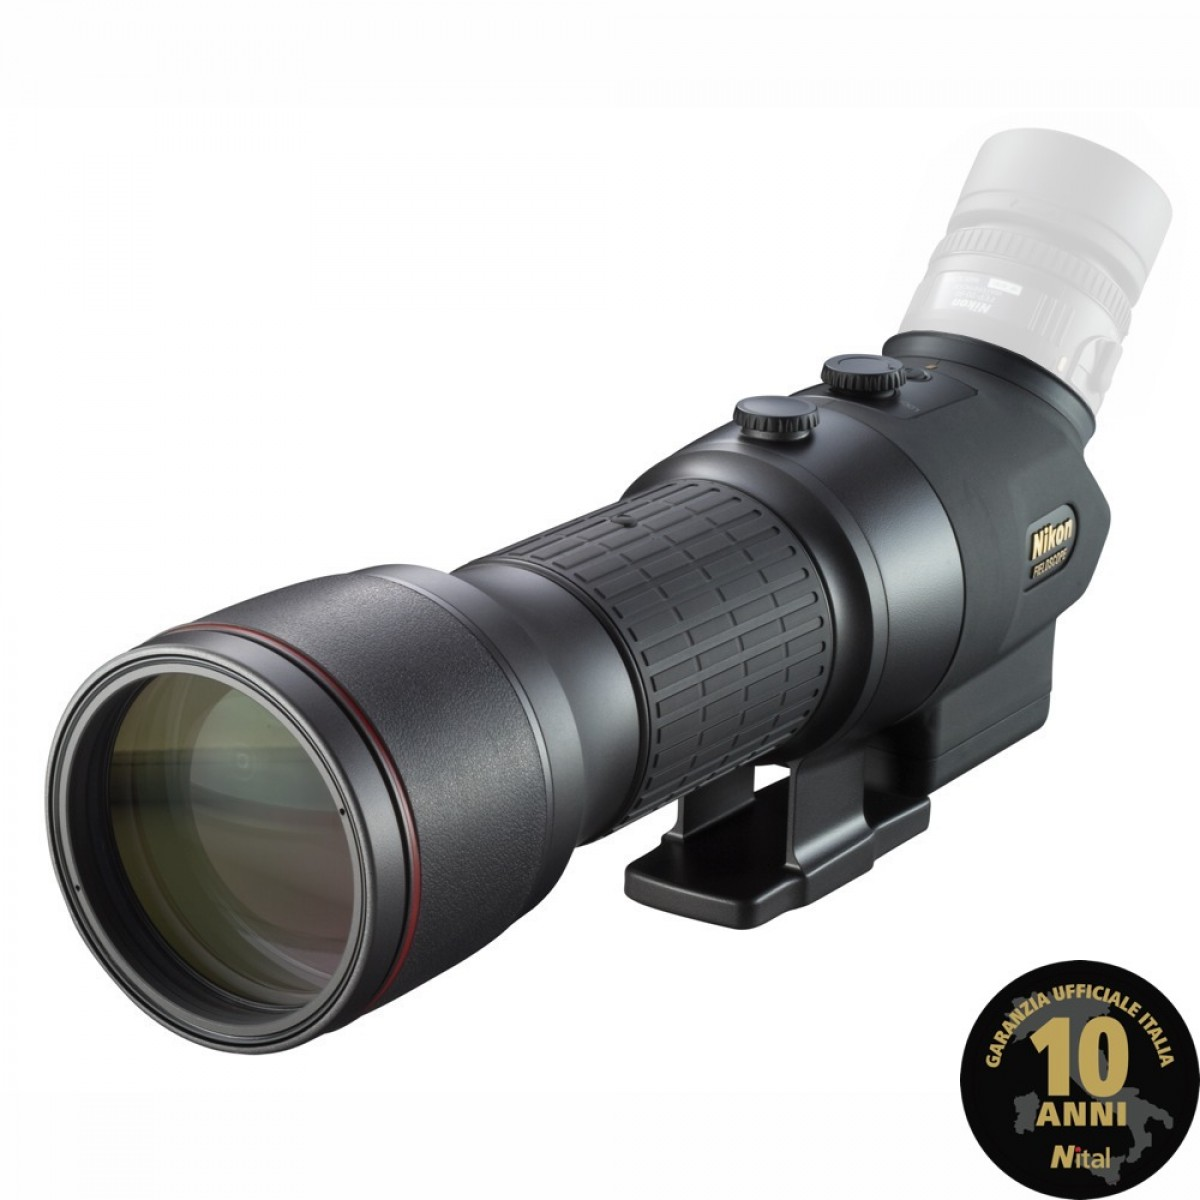 Field Scope EDG 85 A corpo